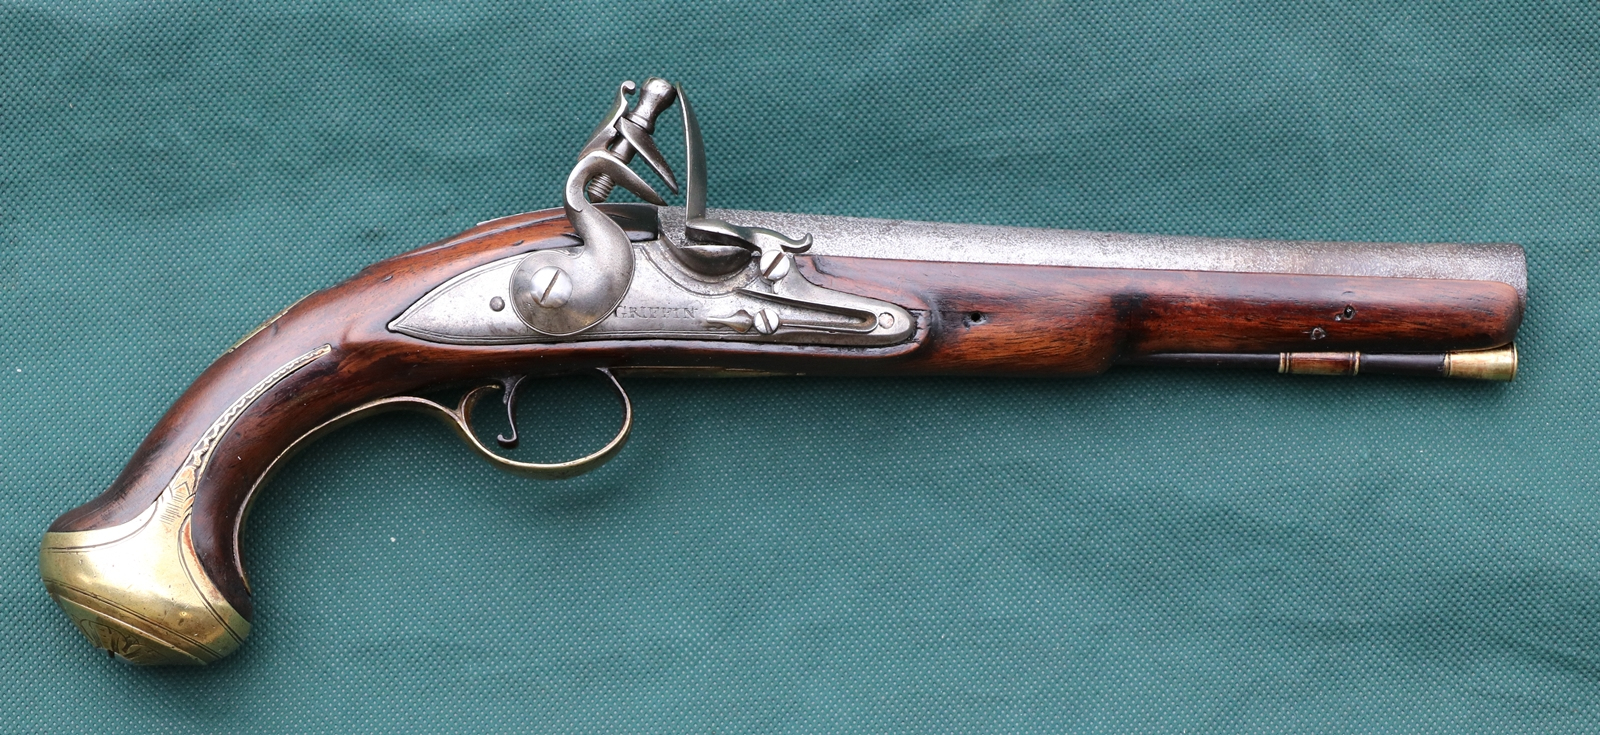 gun engraving – Antique Firearms Restoration Blog